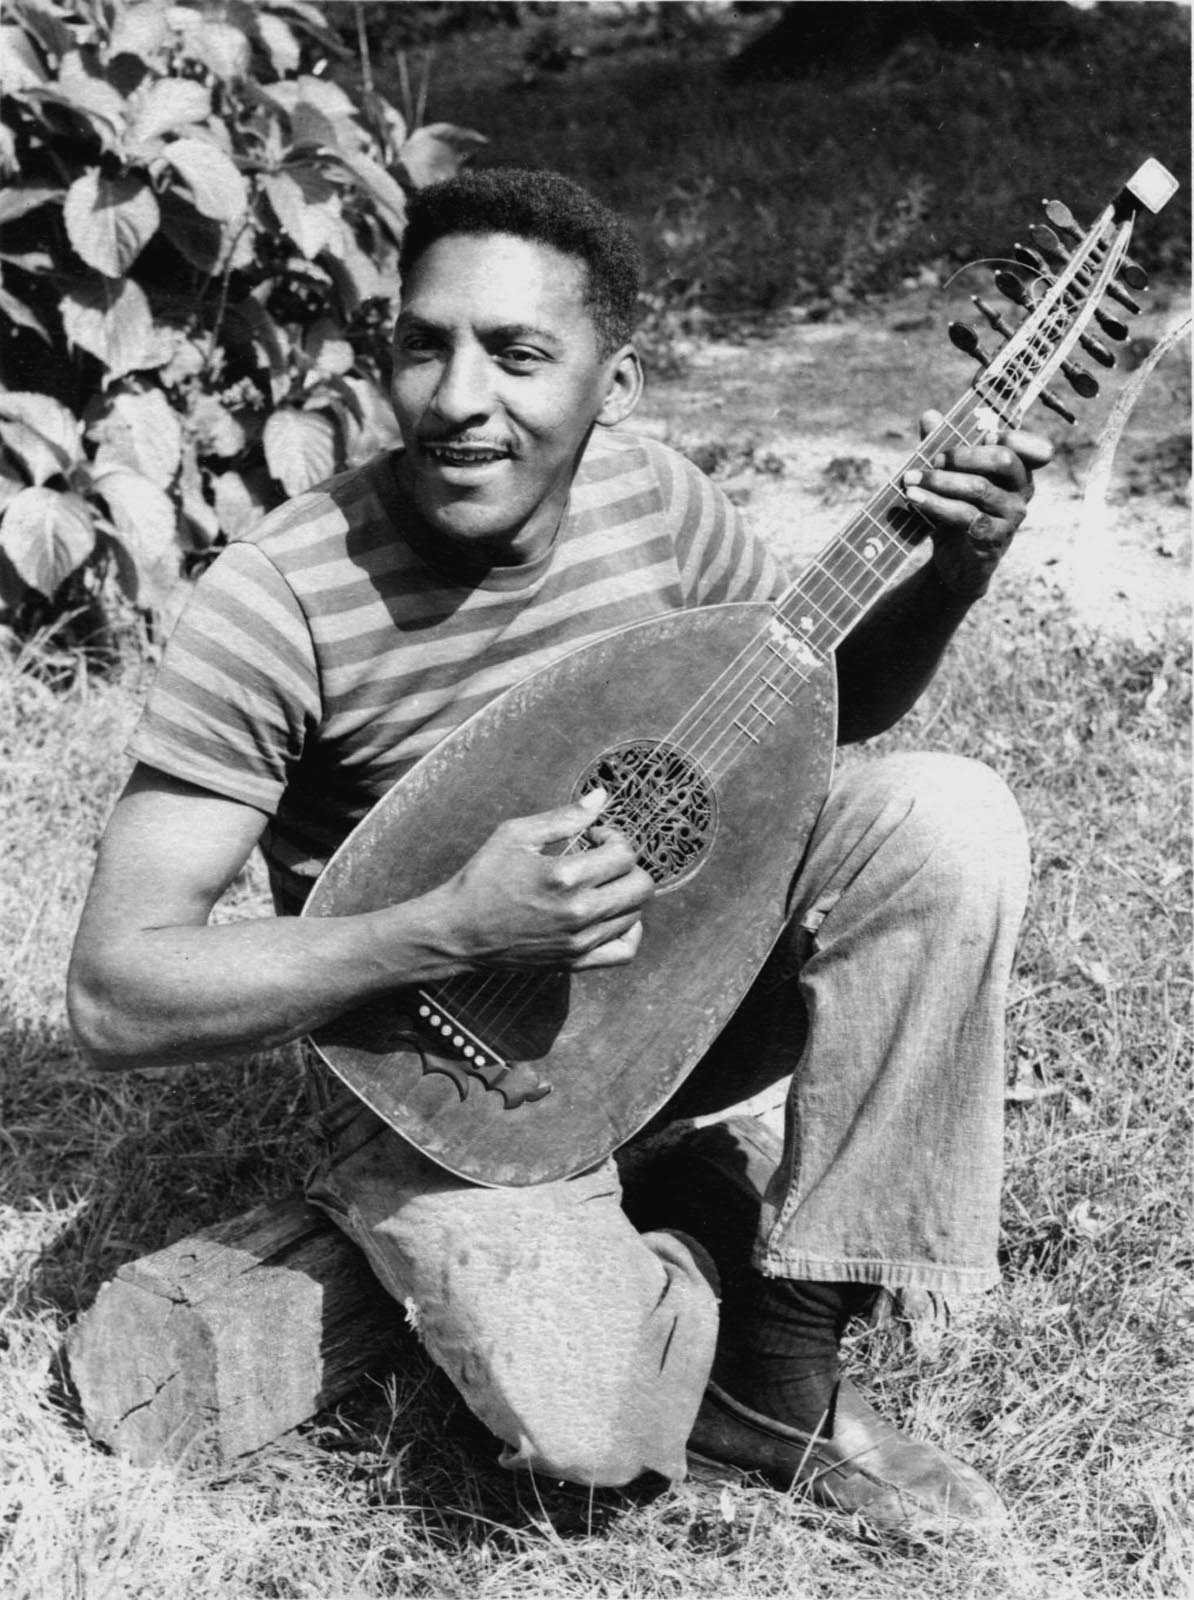 Rustin in the late 1940s. Photo courtesy of the Estate of Bayard Rustin.